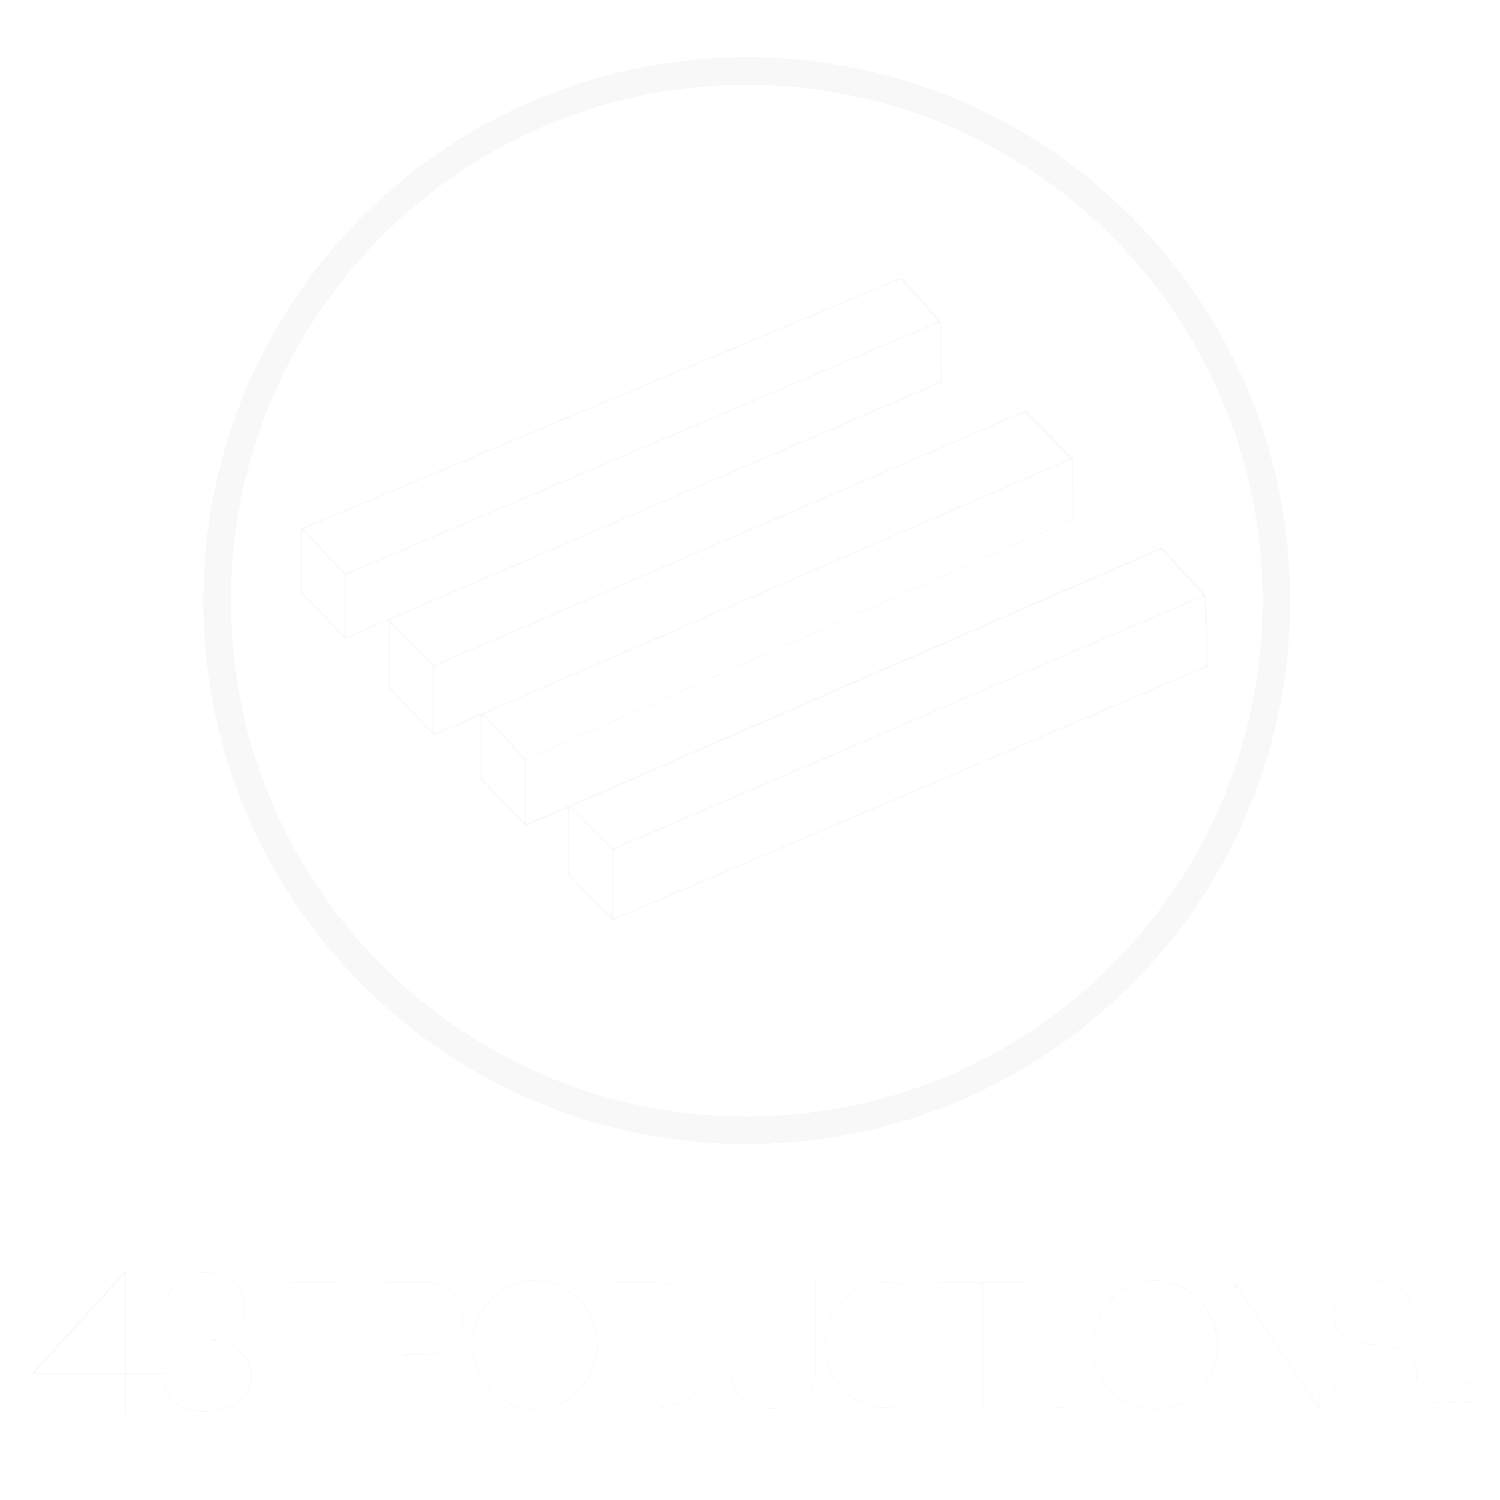 43 Productions LLC